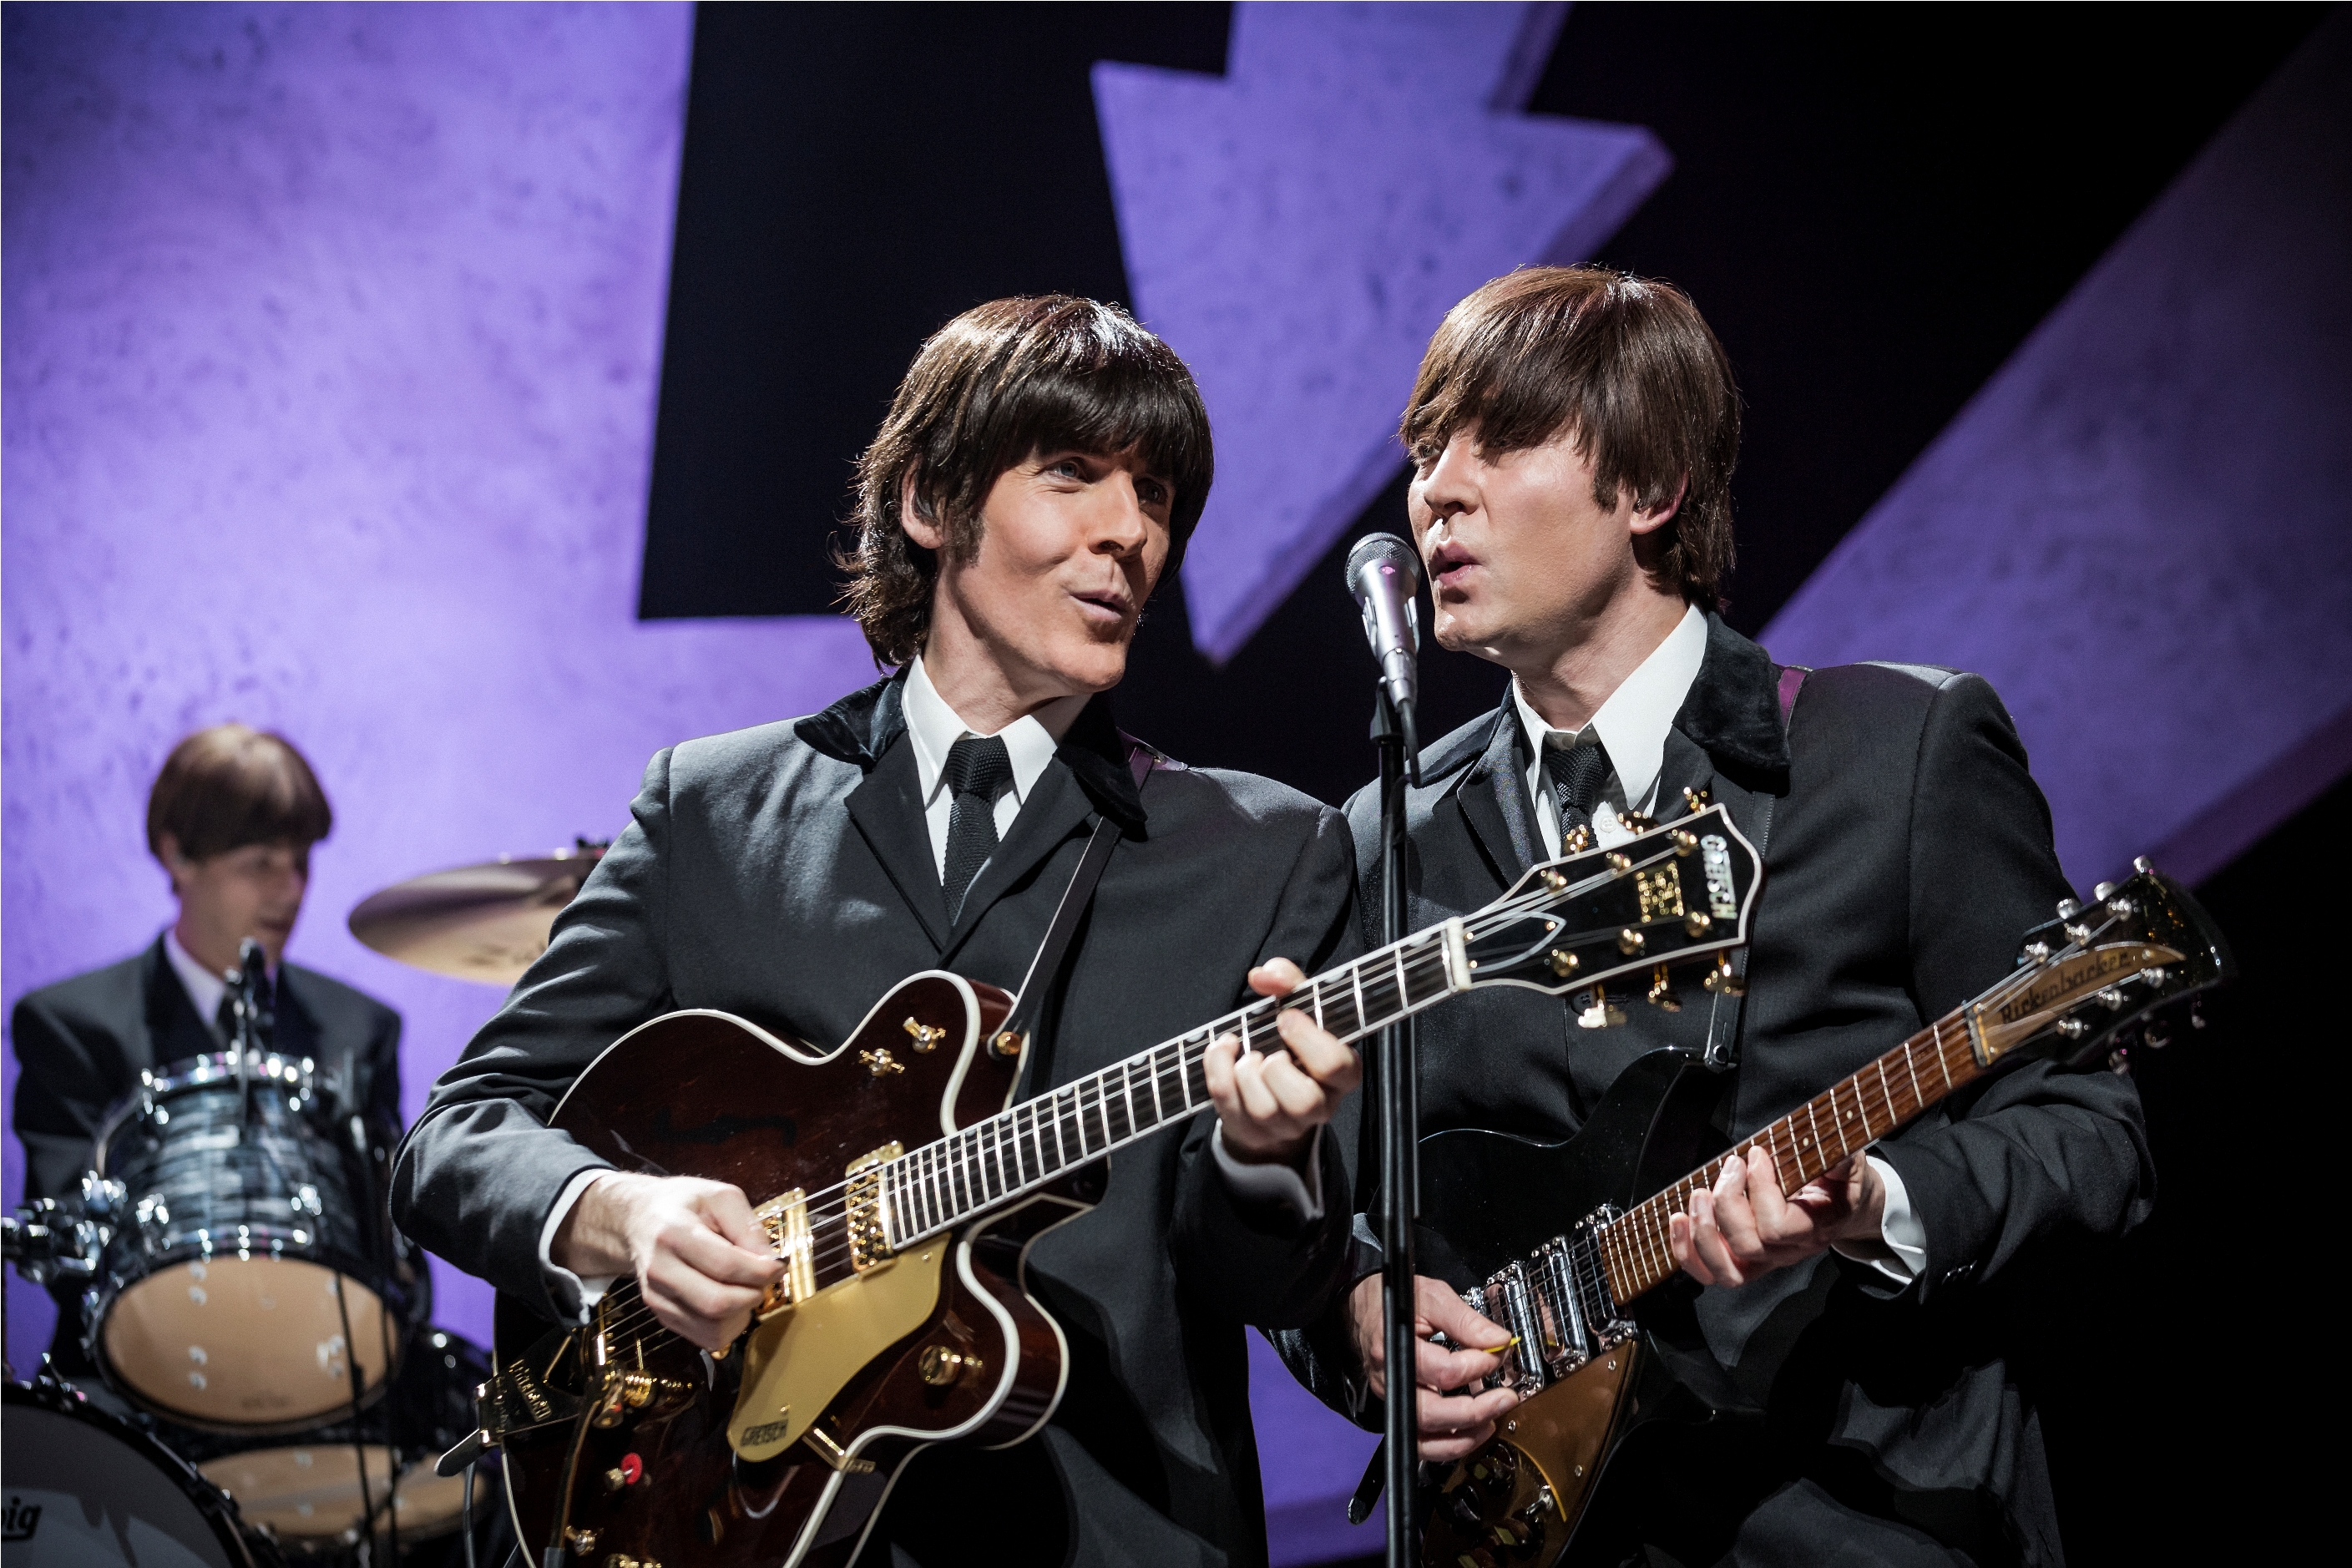 Let It Be: Beatles West End Musical (Babes Review) - Babes